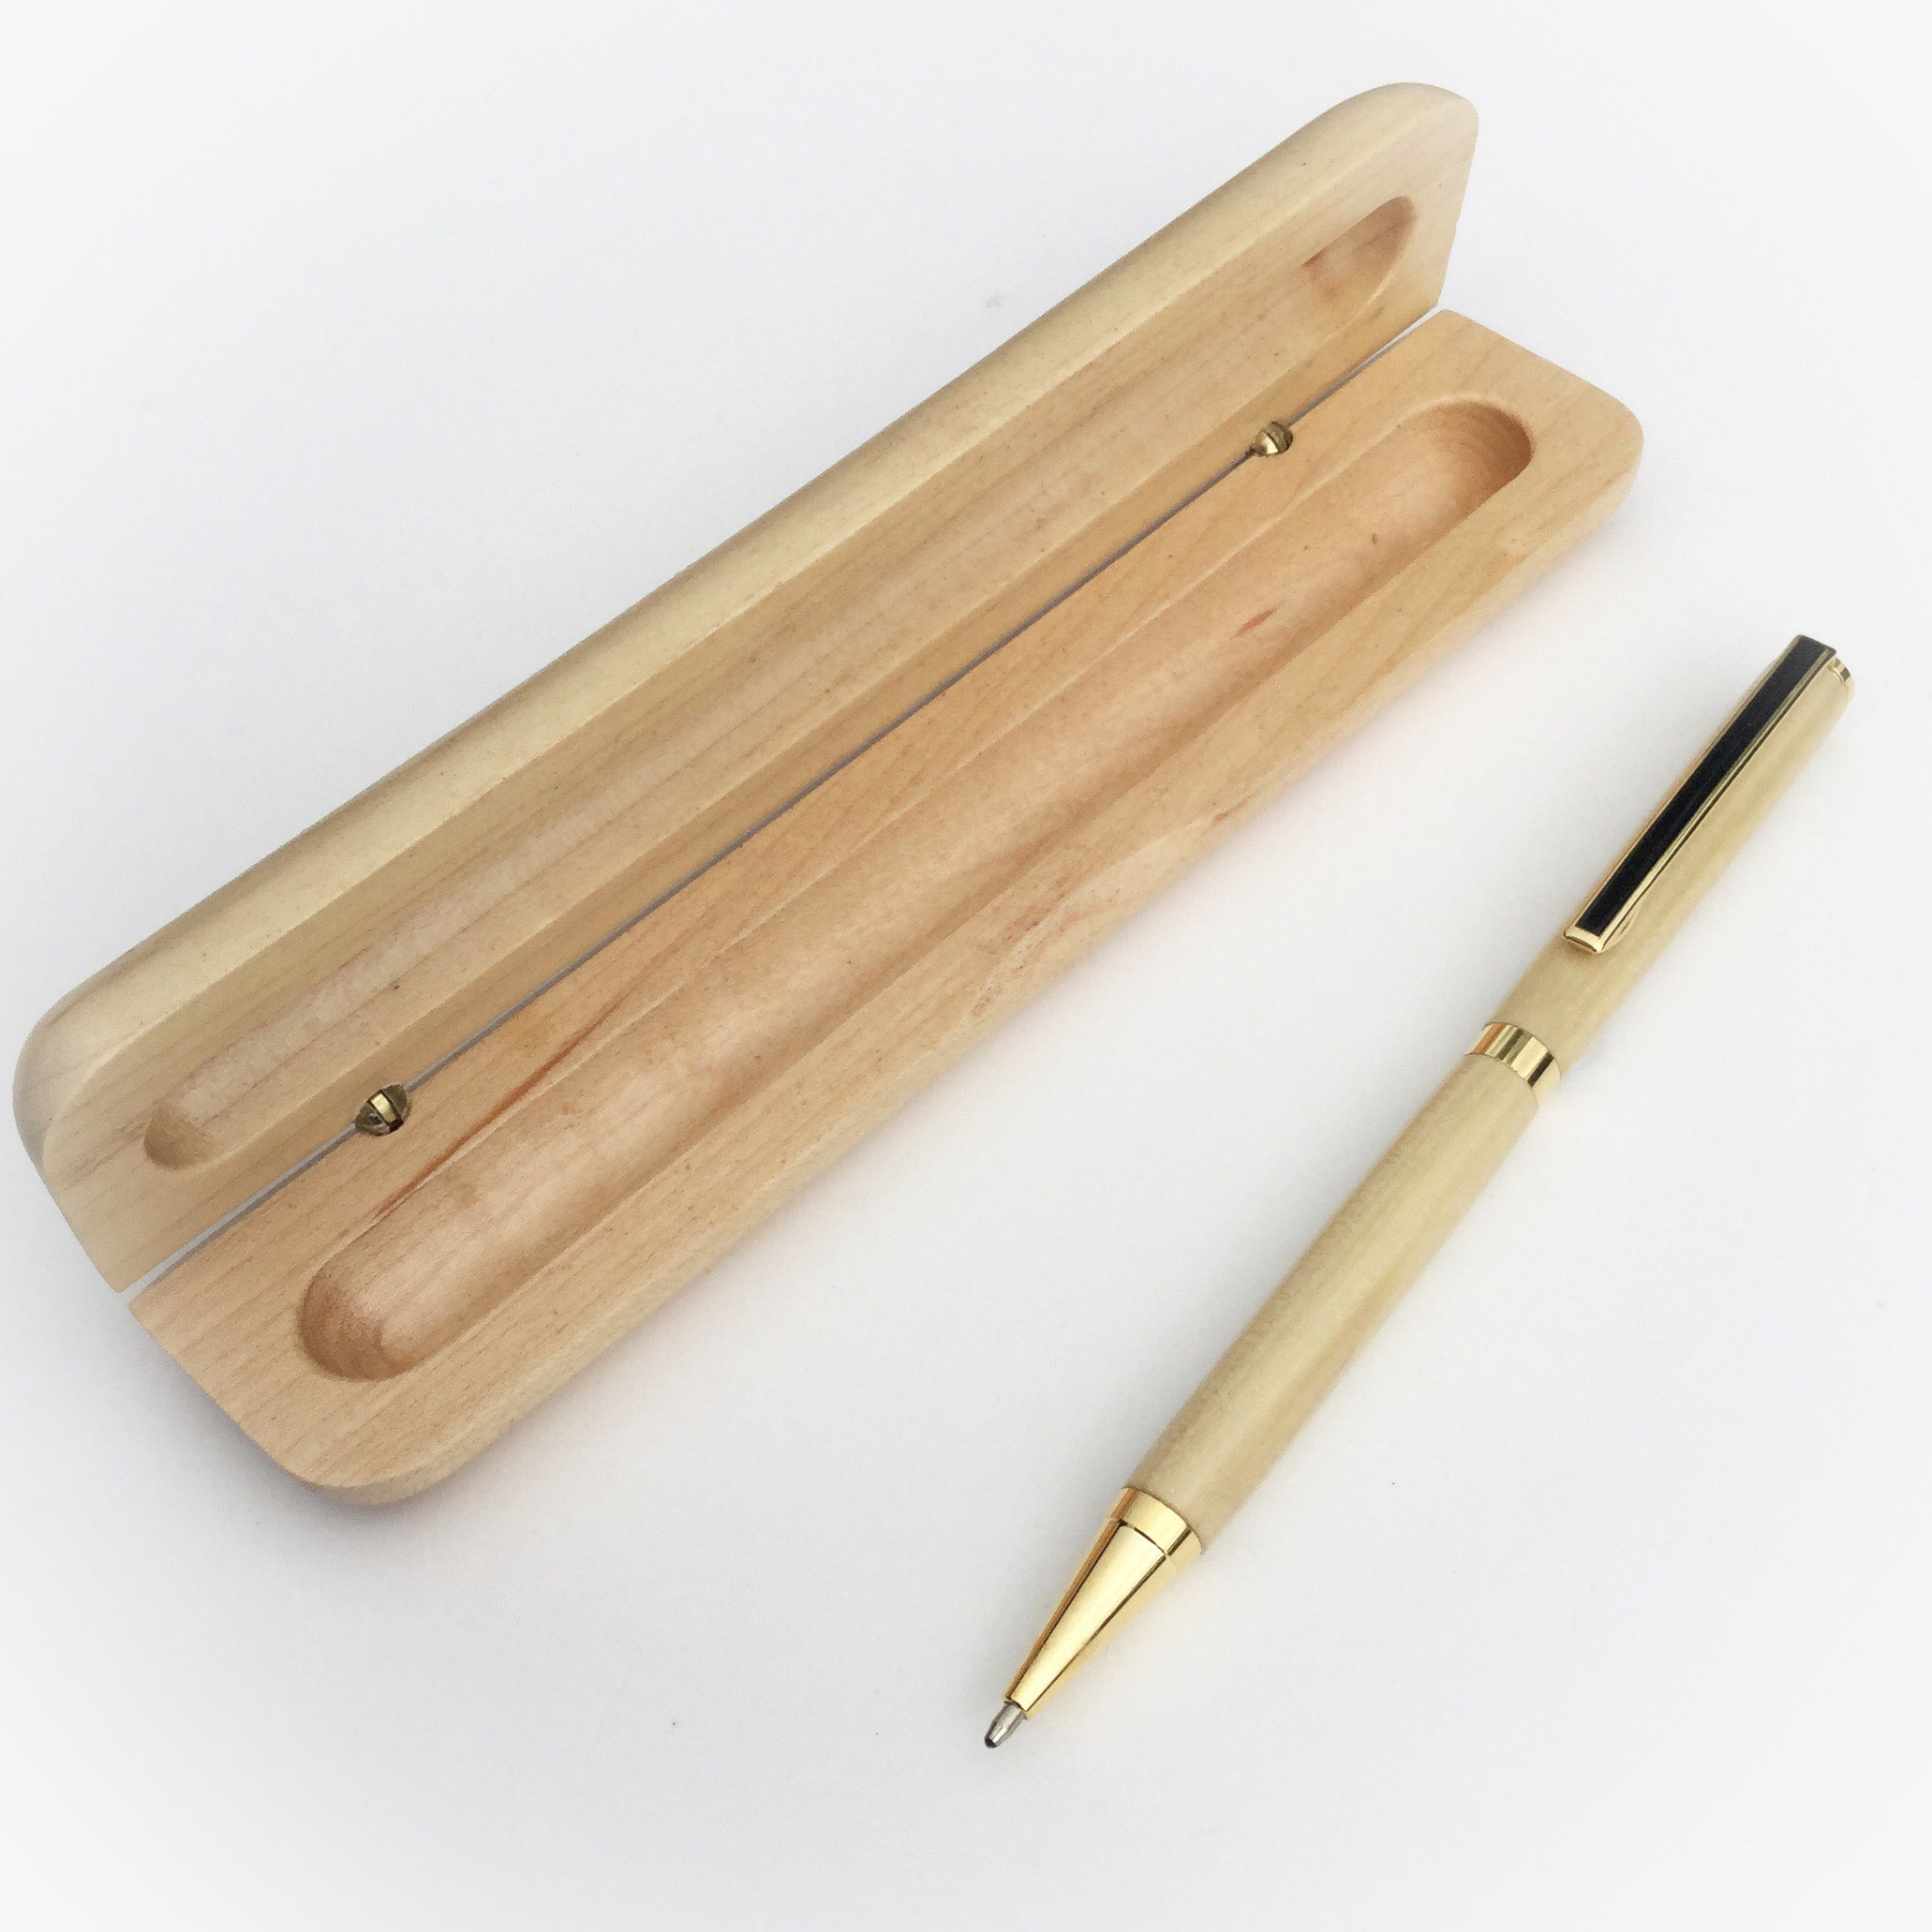 willow gift pen and box set.jpg